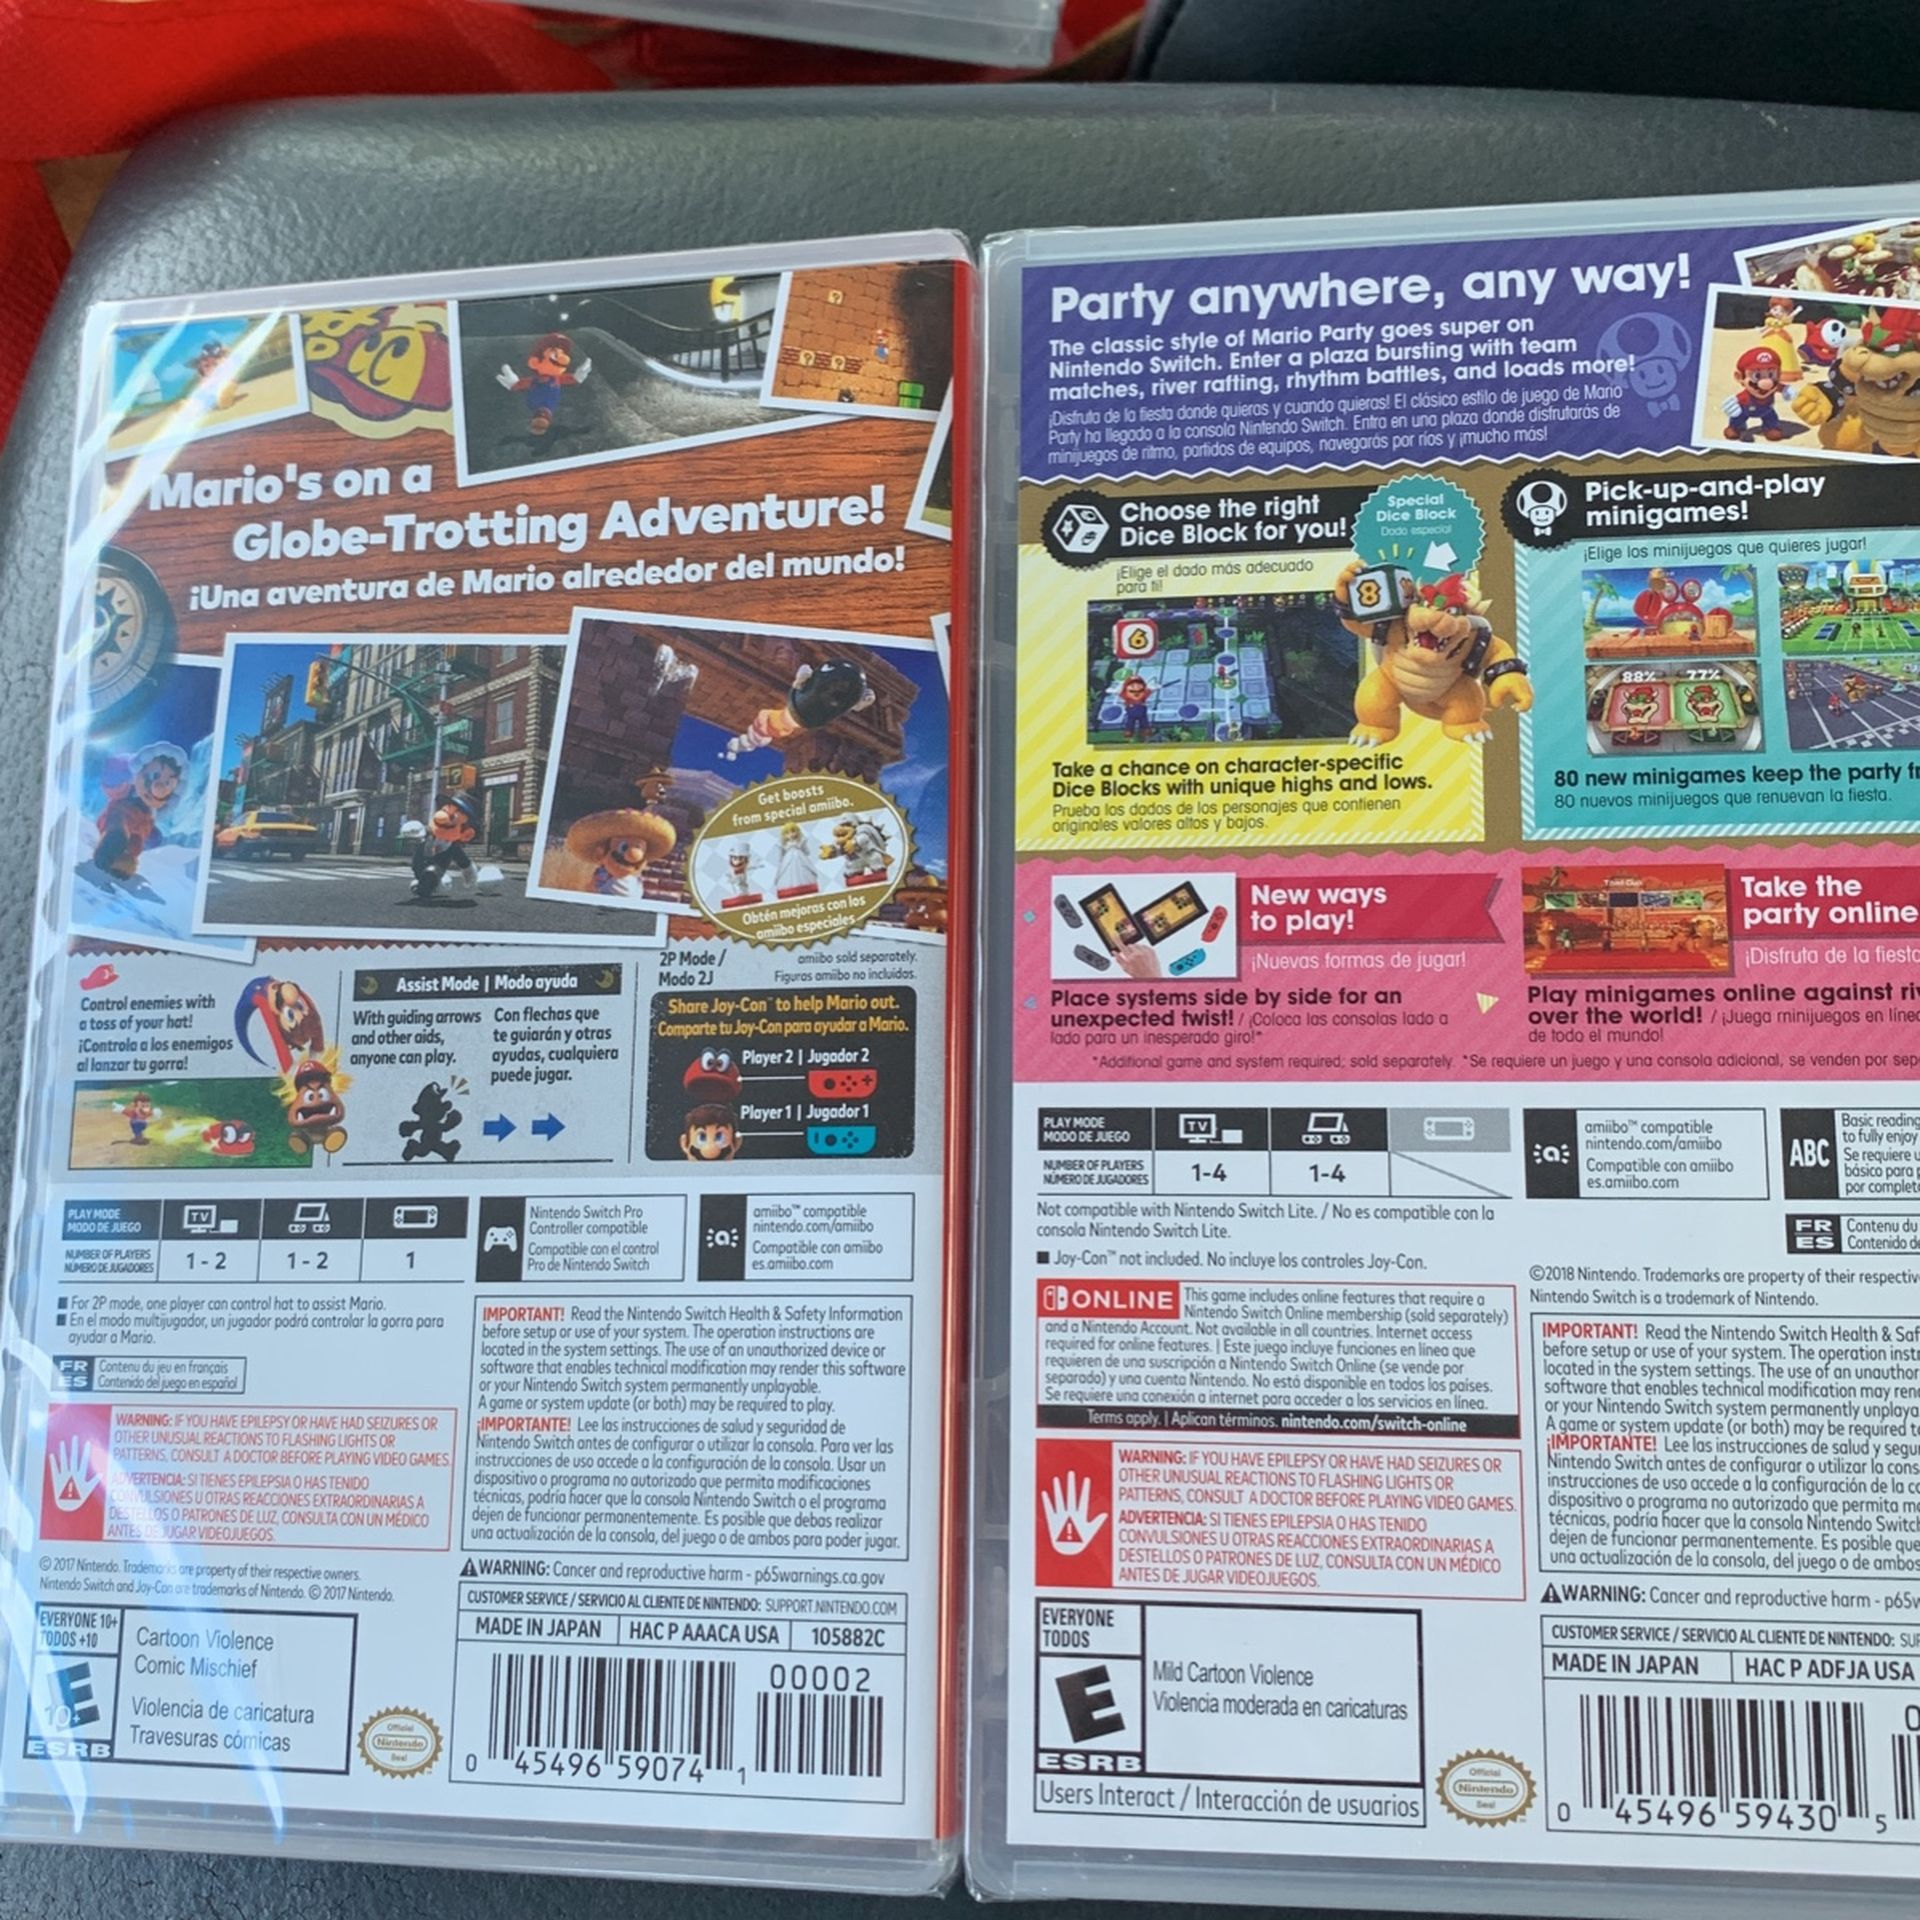 Mario Odyssey And Mario Party - Both Games Have Never Been Opened- Retails For $60 - Selling For $45 Each